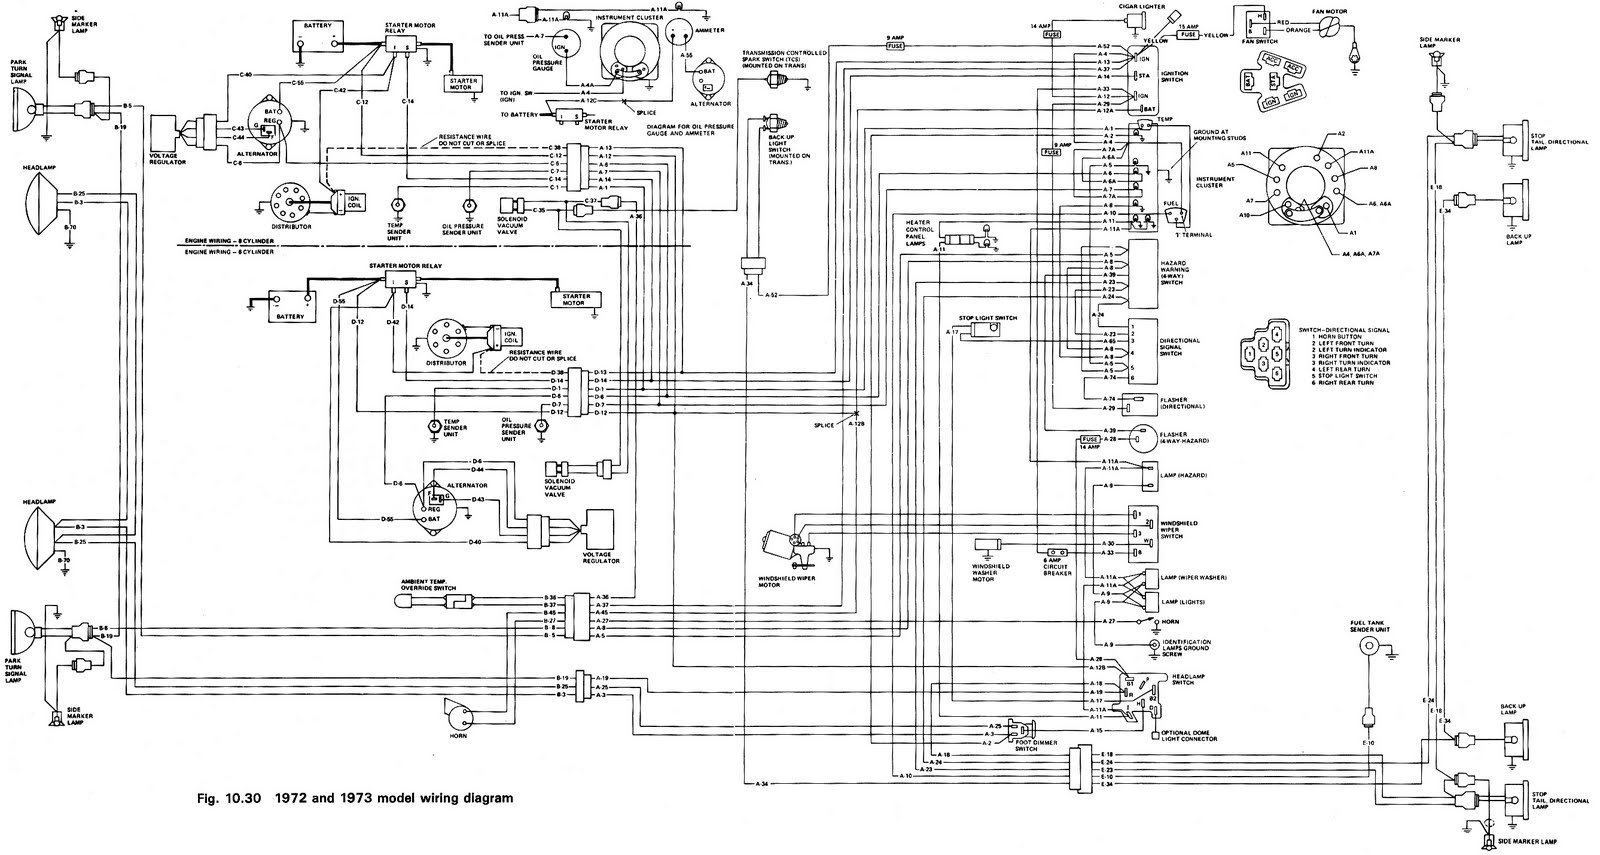 1982 cj5 wiring diagram wiring diagram schematics  78 jeep cj7 wiring schematic